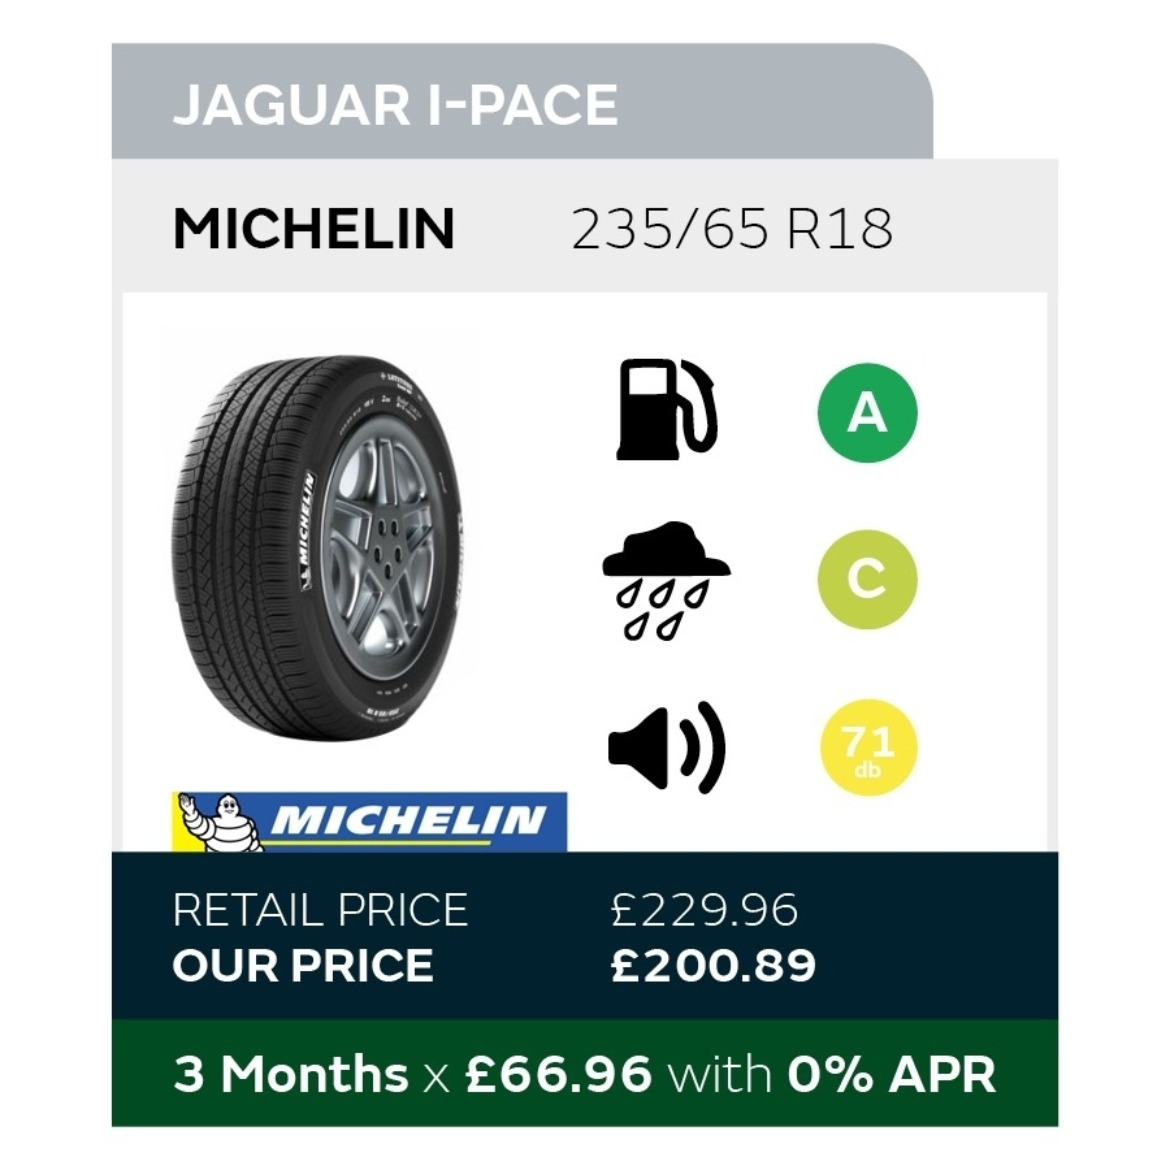 Jaguar I-Pace Tyre Offer